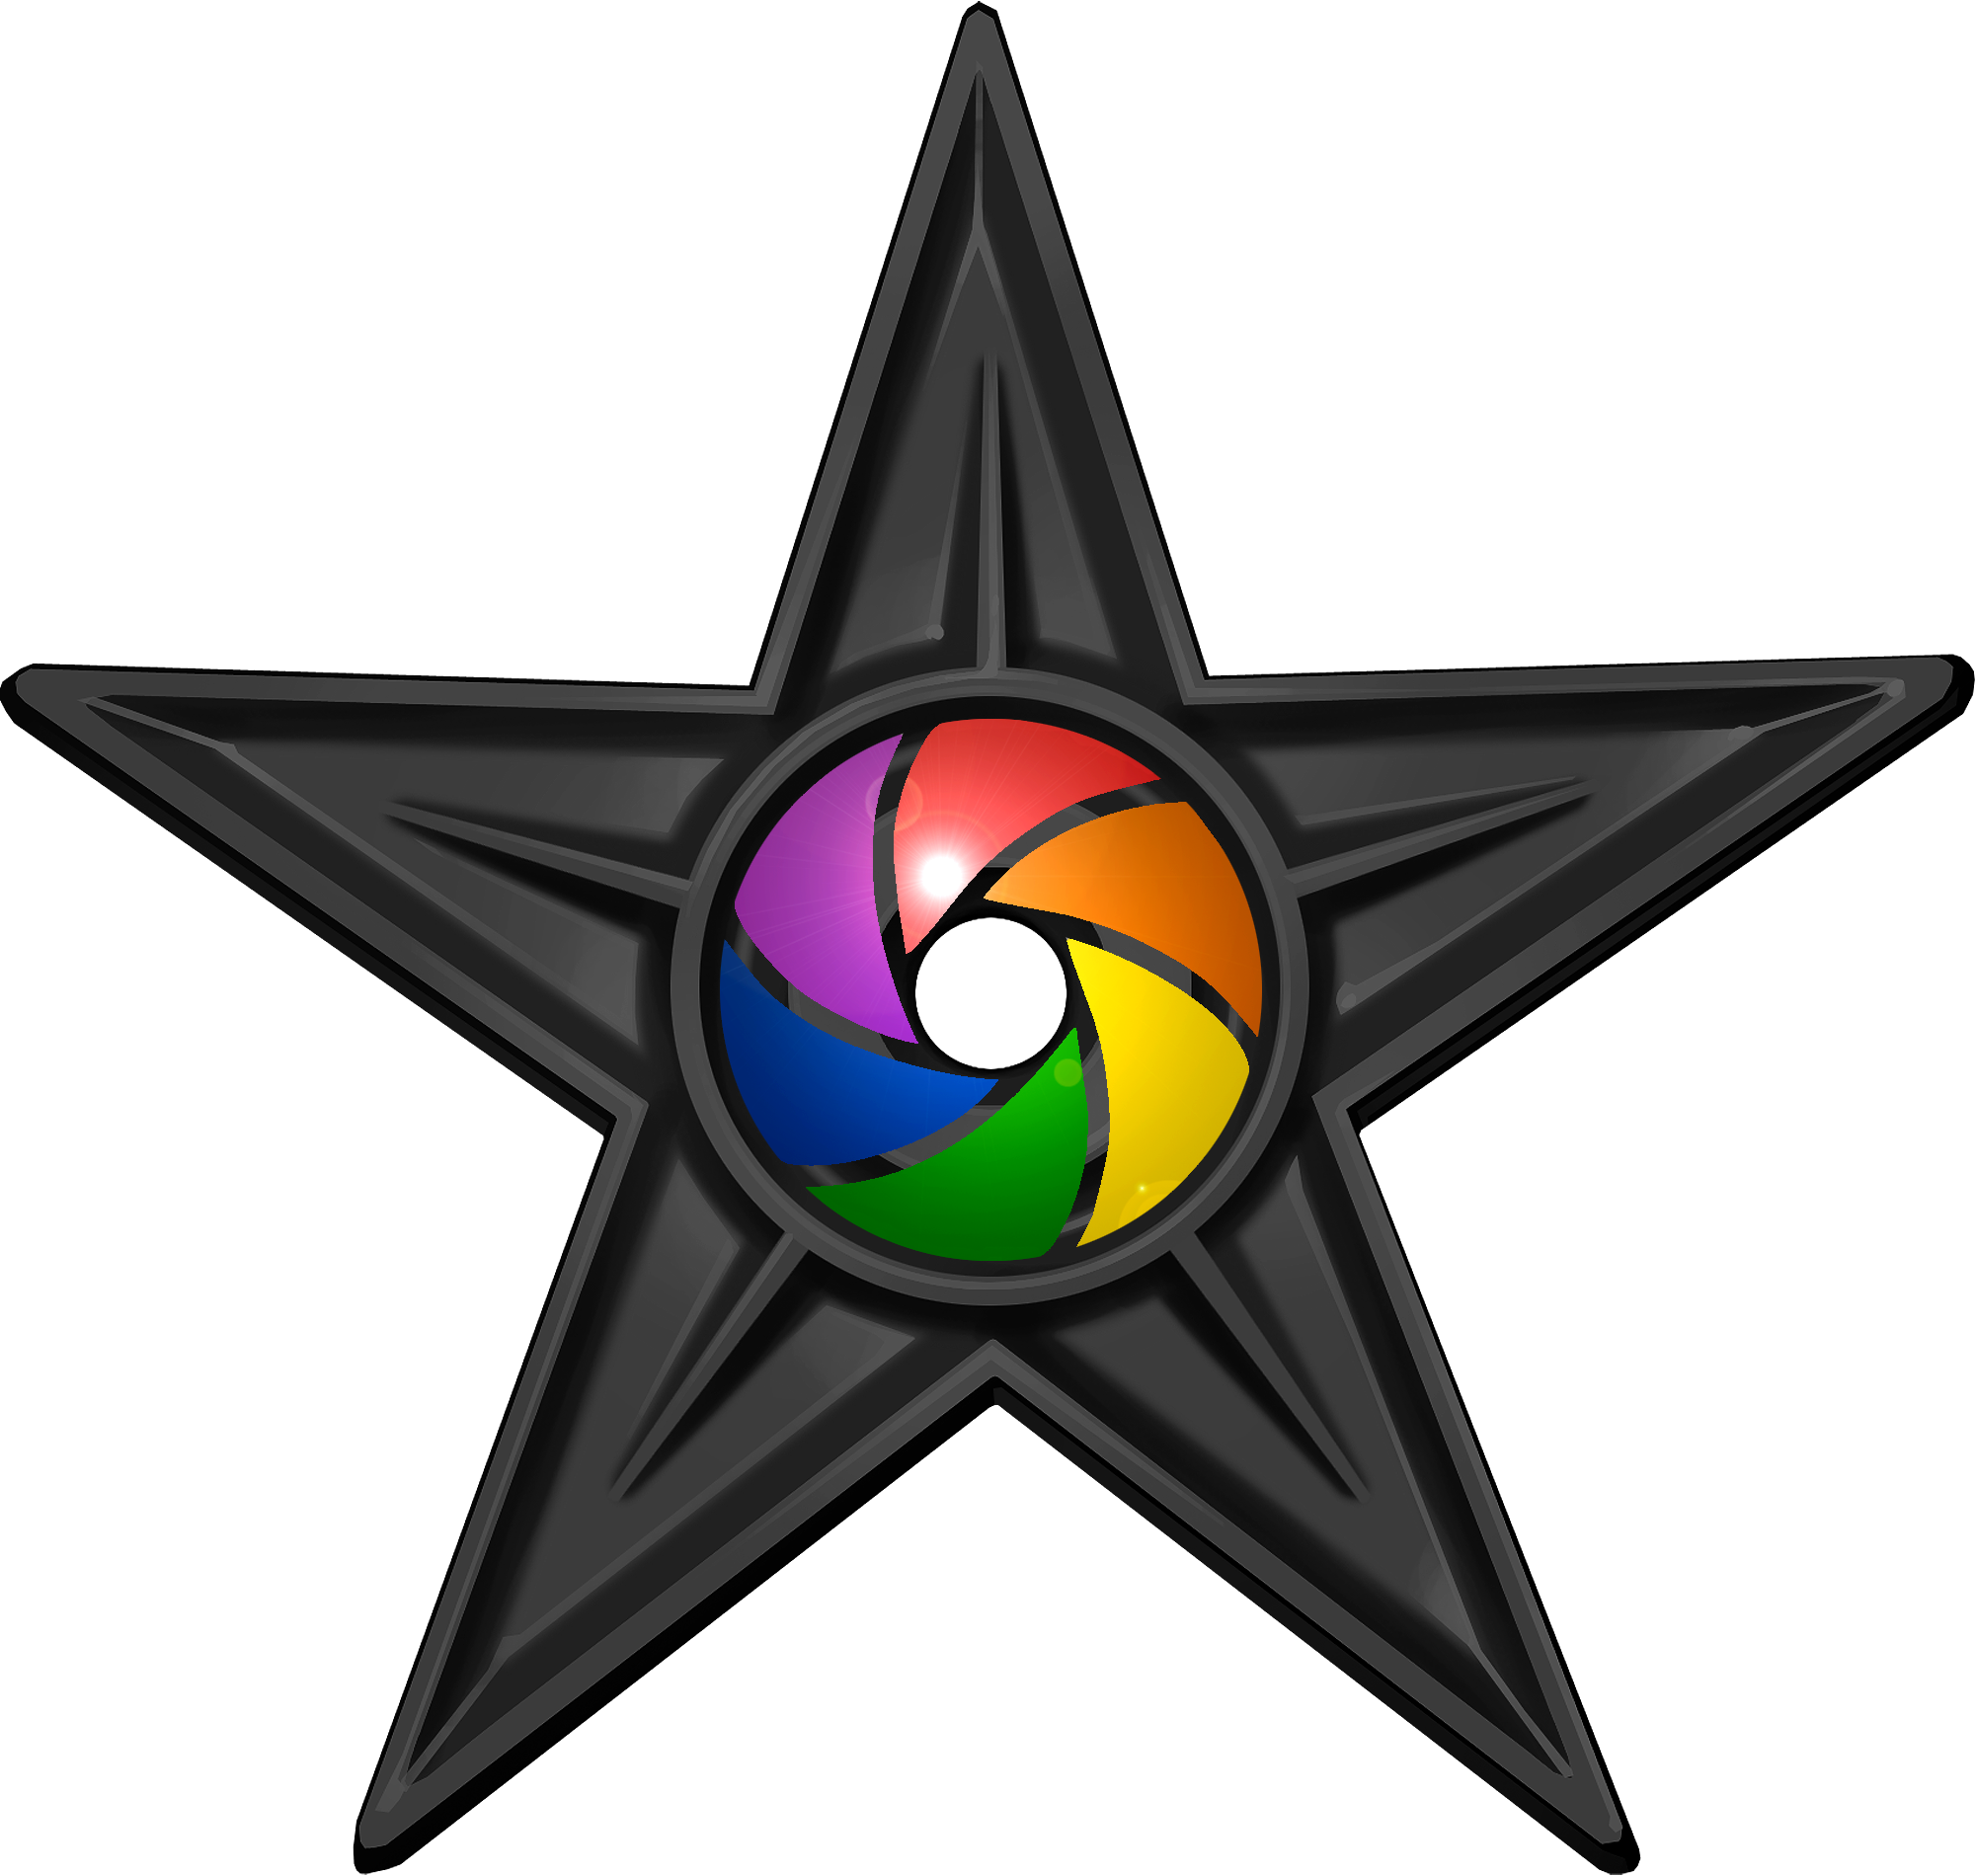 File photographer barnstar wikimedia. Imagenes png graphic freeuse